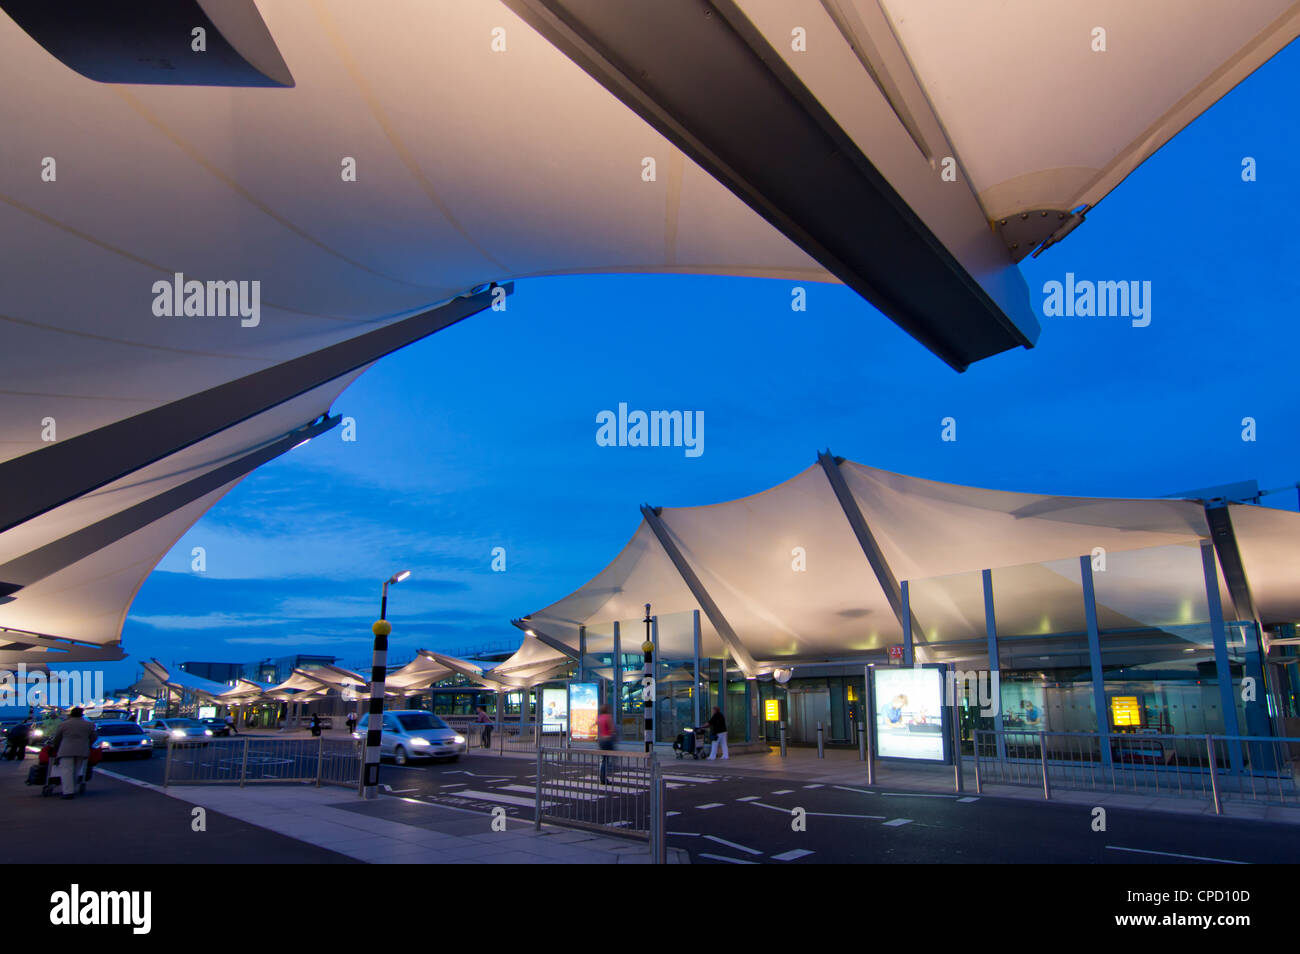 Heathrow Airport Terminal 5 at dusk, London, England, United Kingdom, Europe - Stock Image